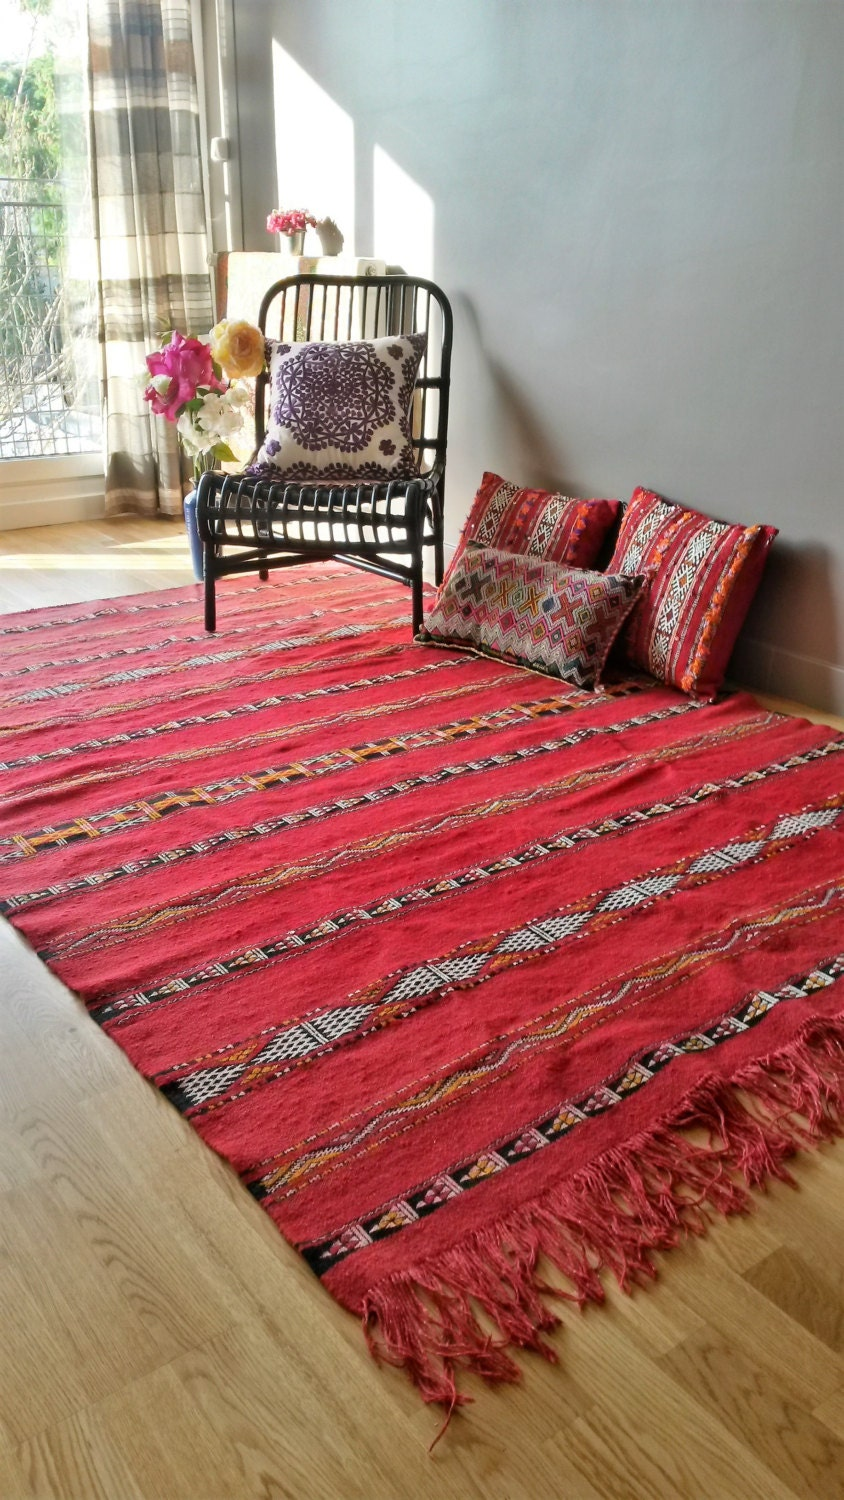 tapis kilim berb re en laine fait main etsy. Black Bedroom Furniture Sets. Home Design Ideas